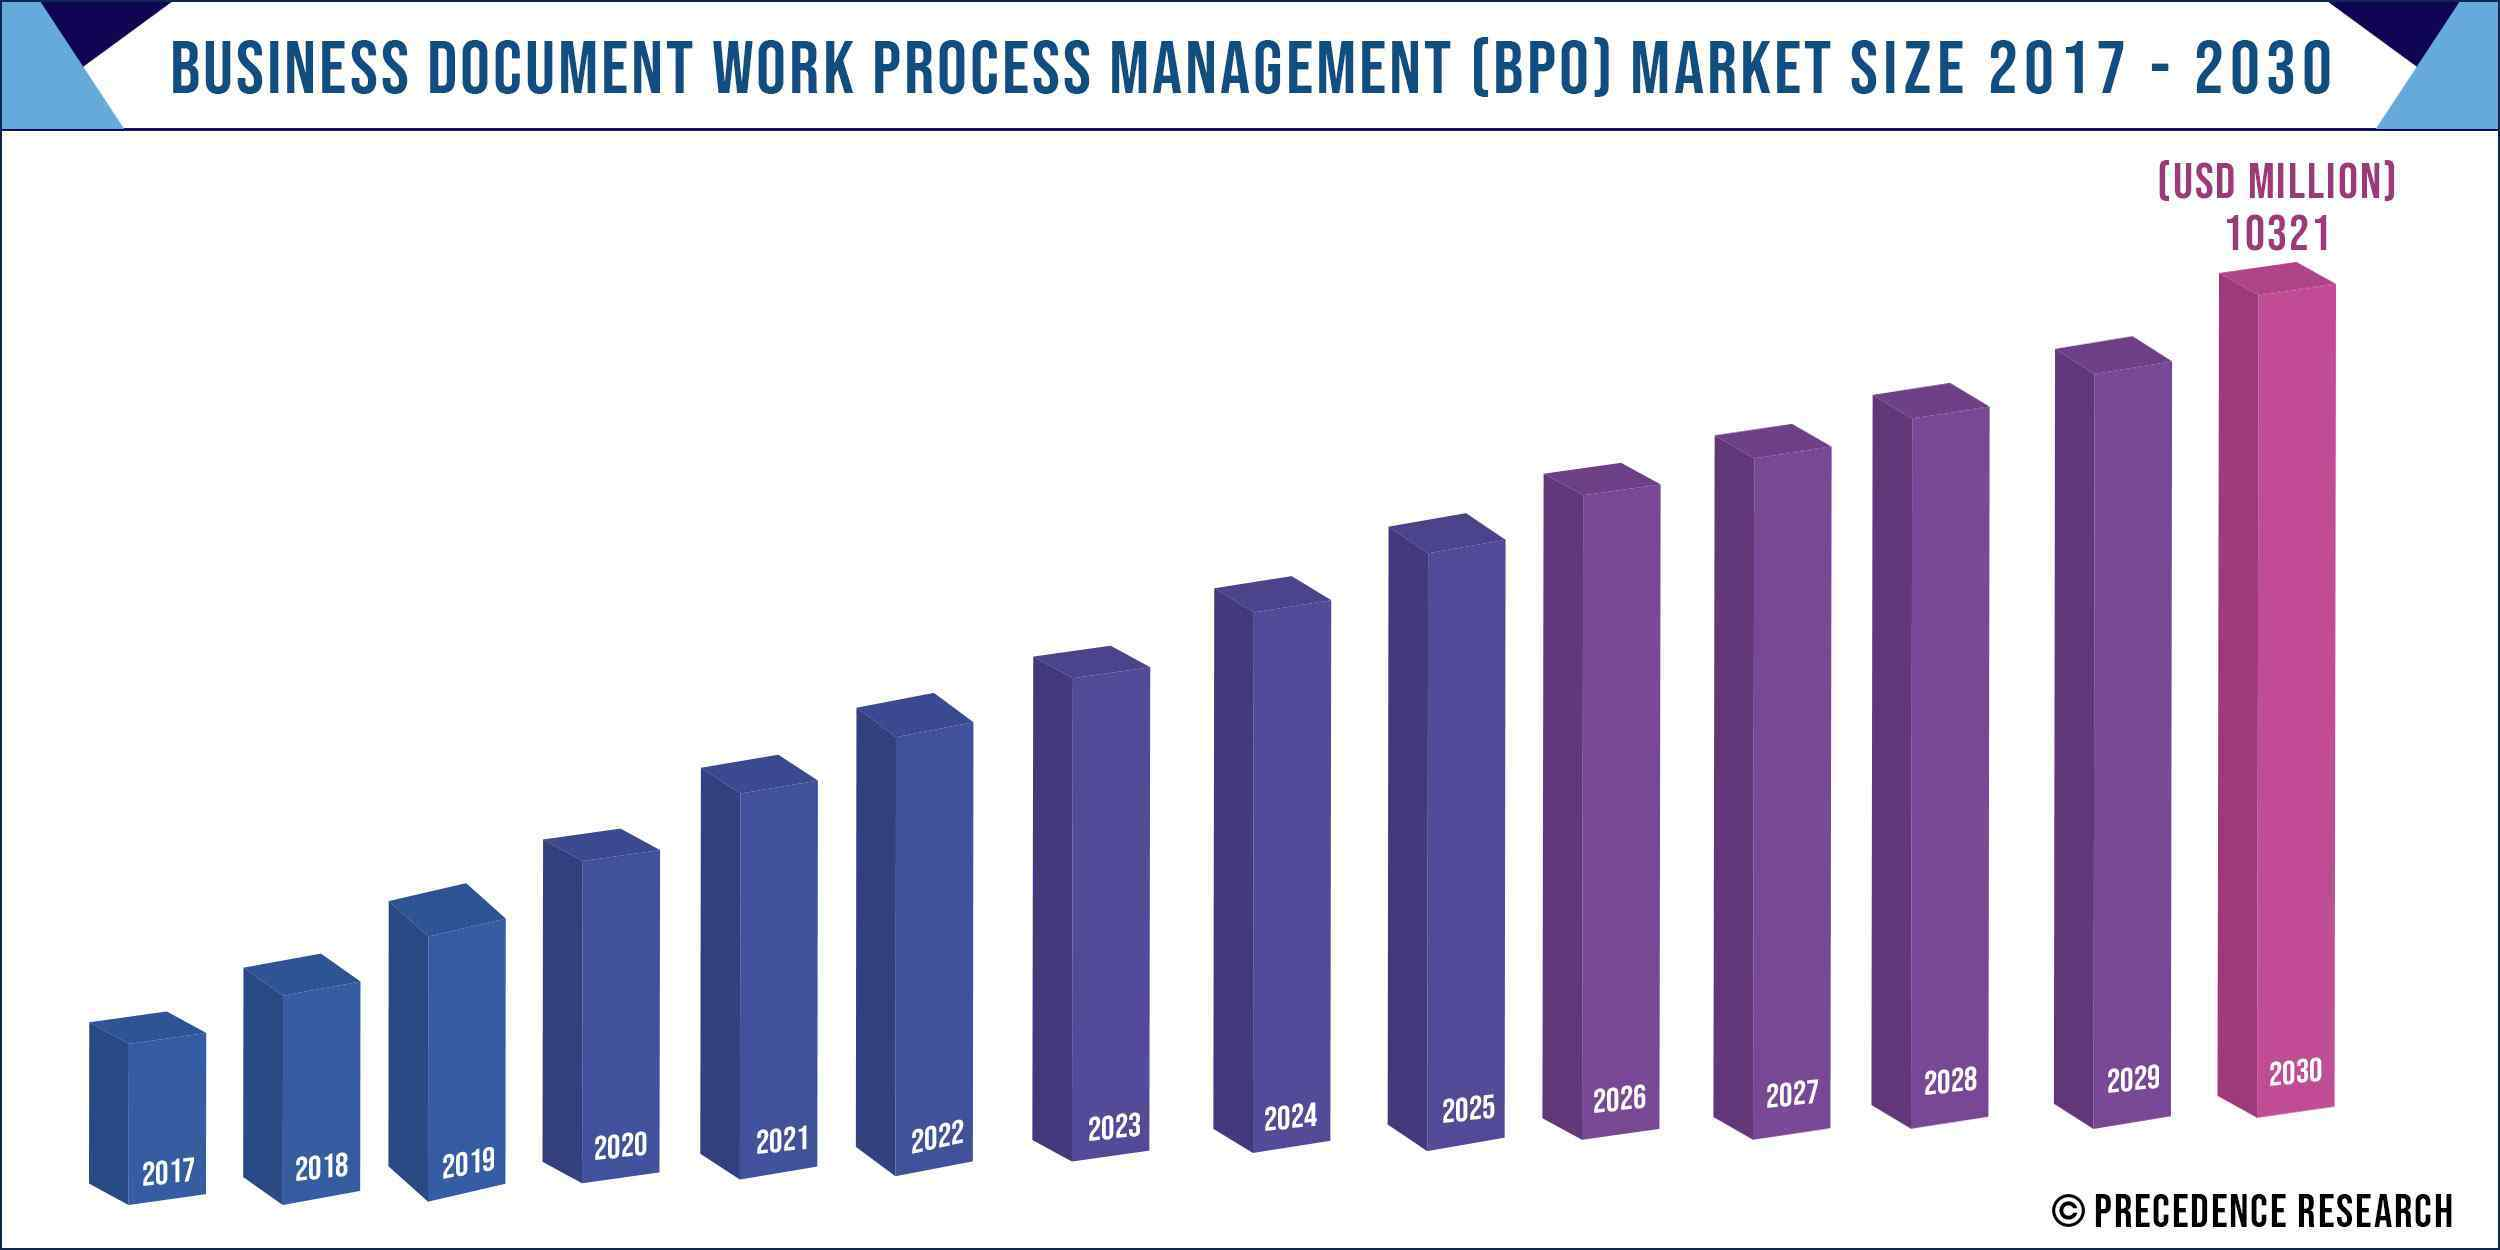 Business Document Work Process Management Market Size 2017-2030